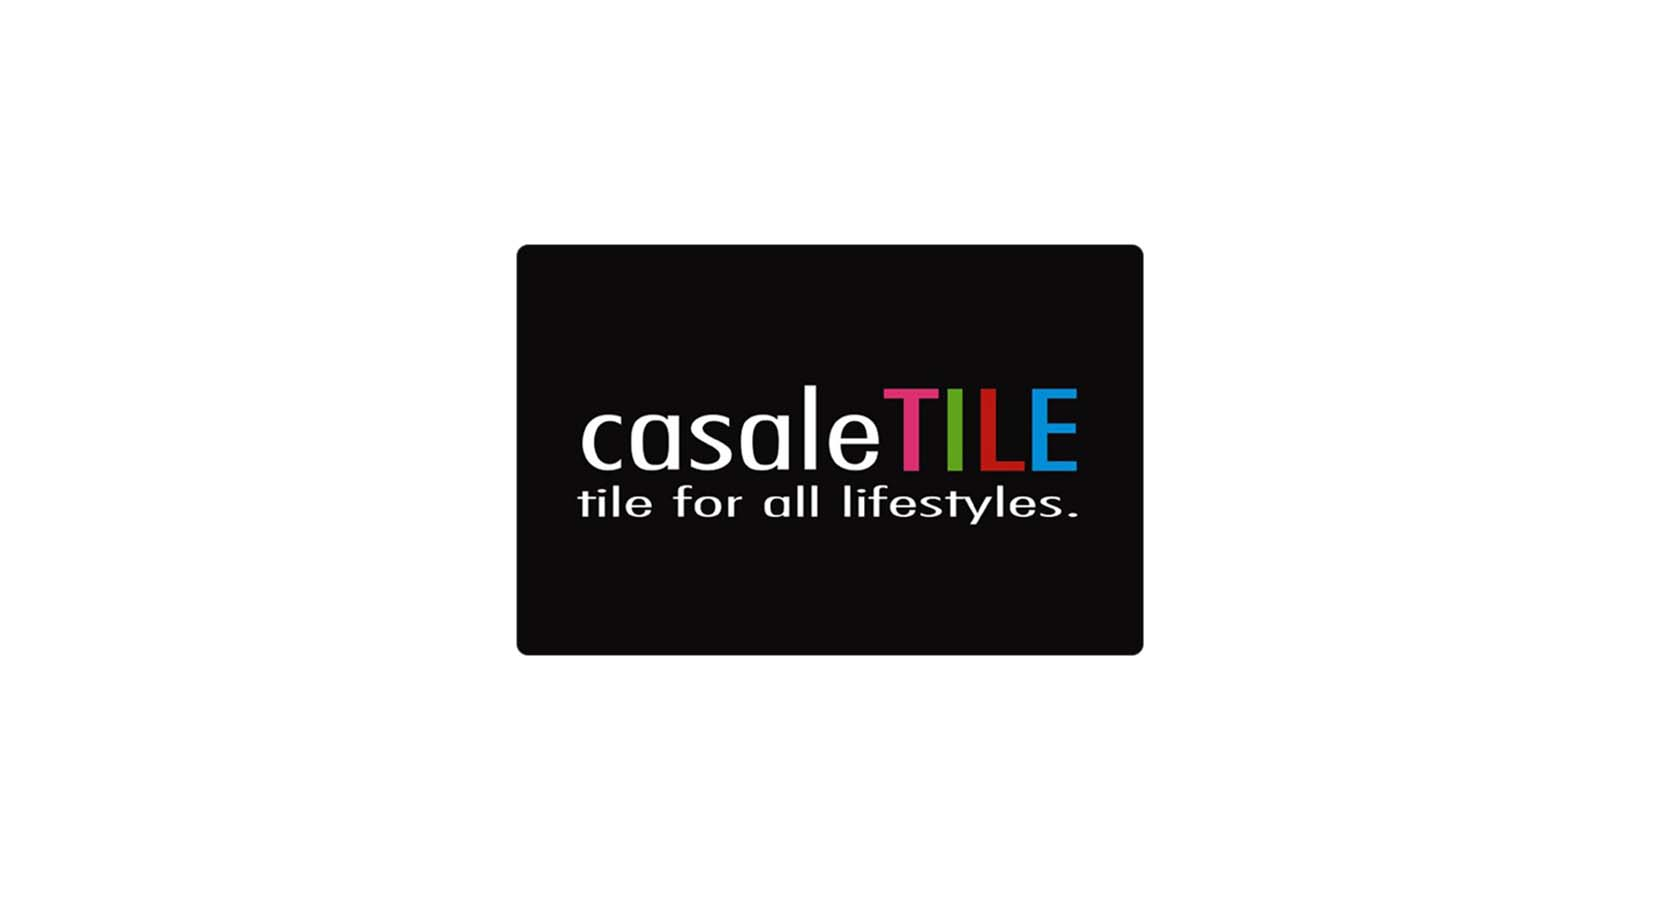 Casale tile staten island ny adcorp business network casale tile staten island ny 1 dailygadgetfo Gallery